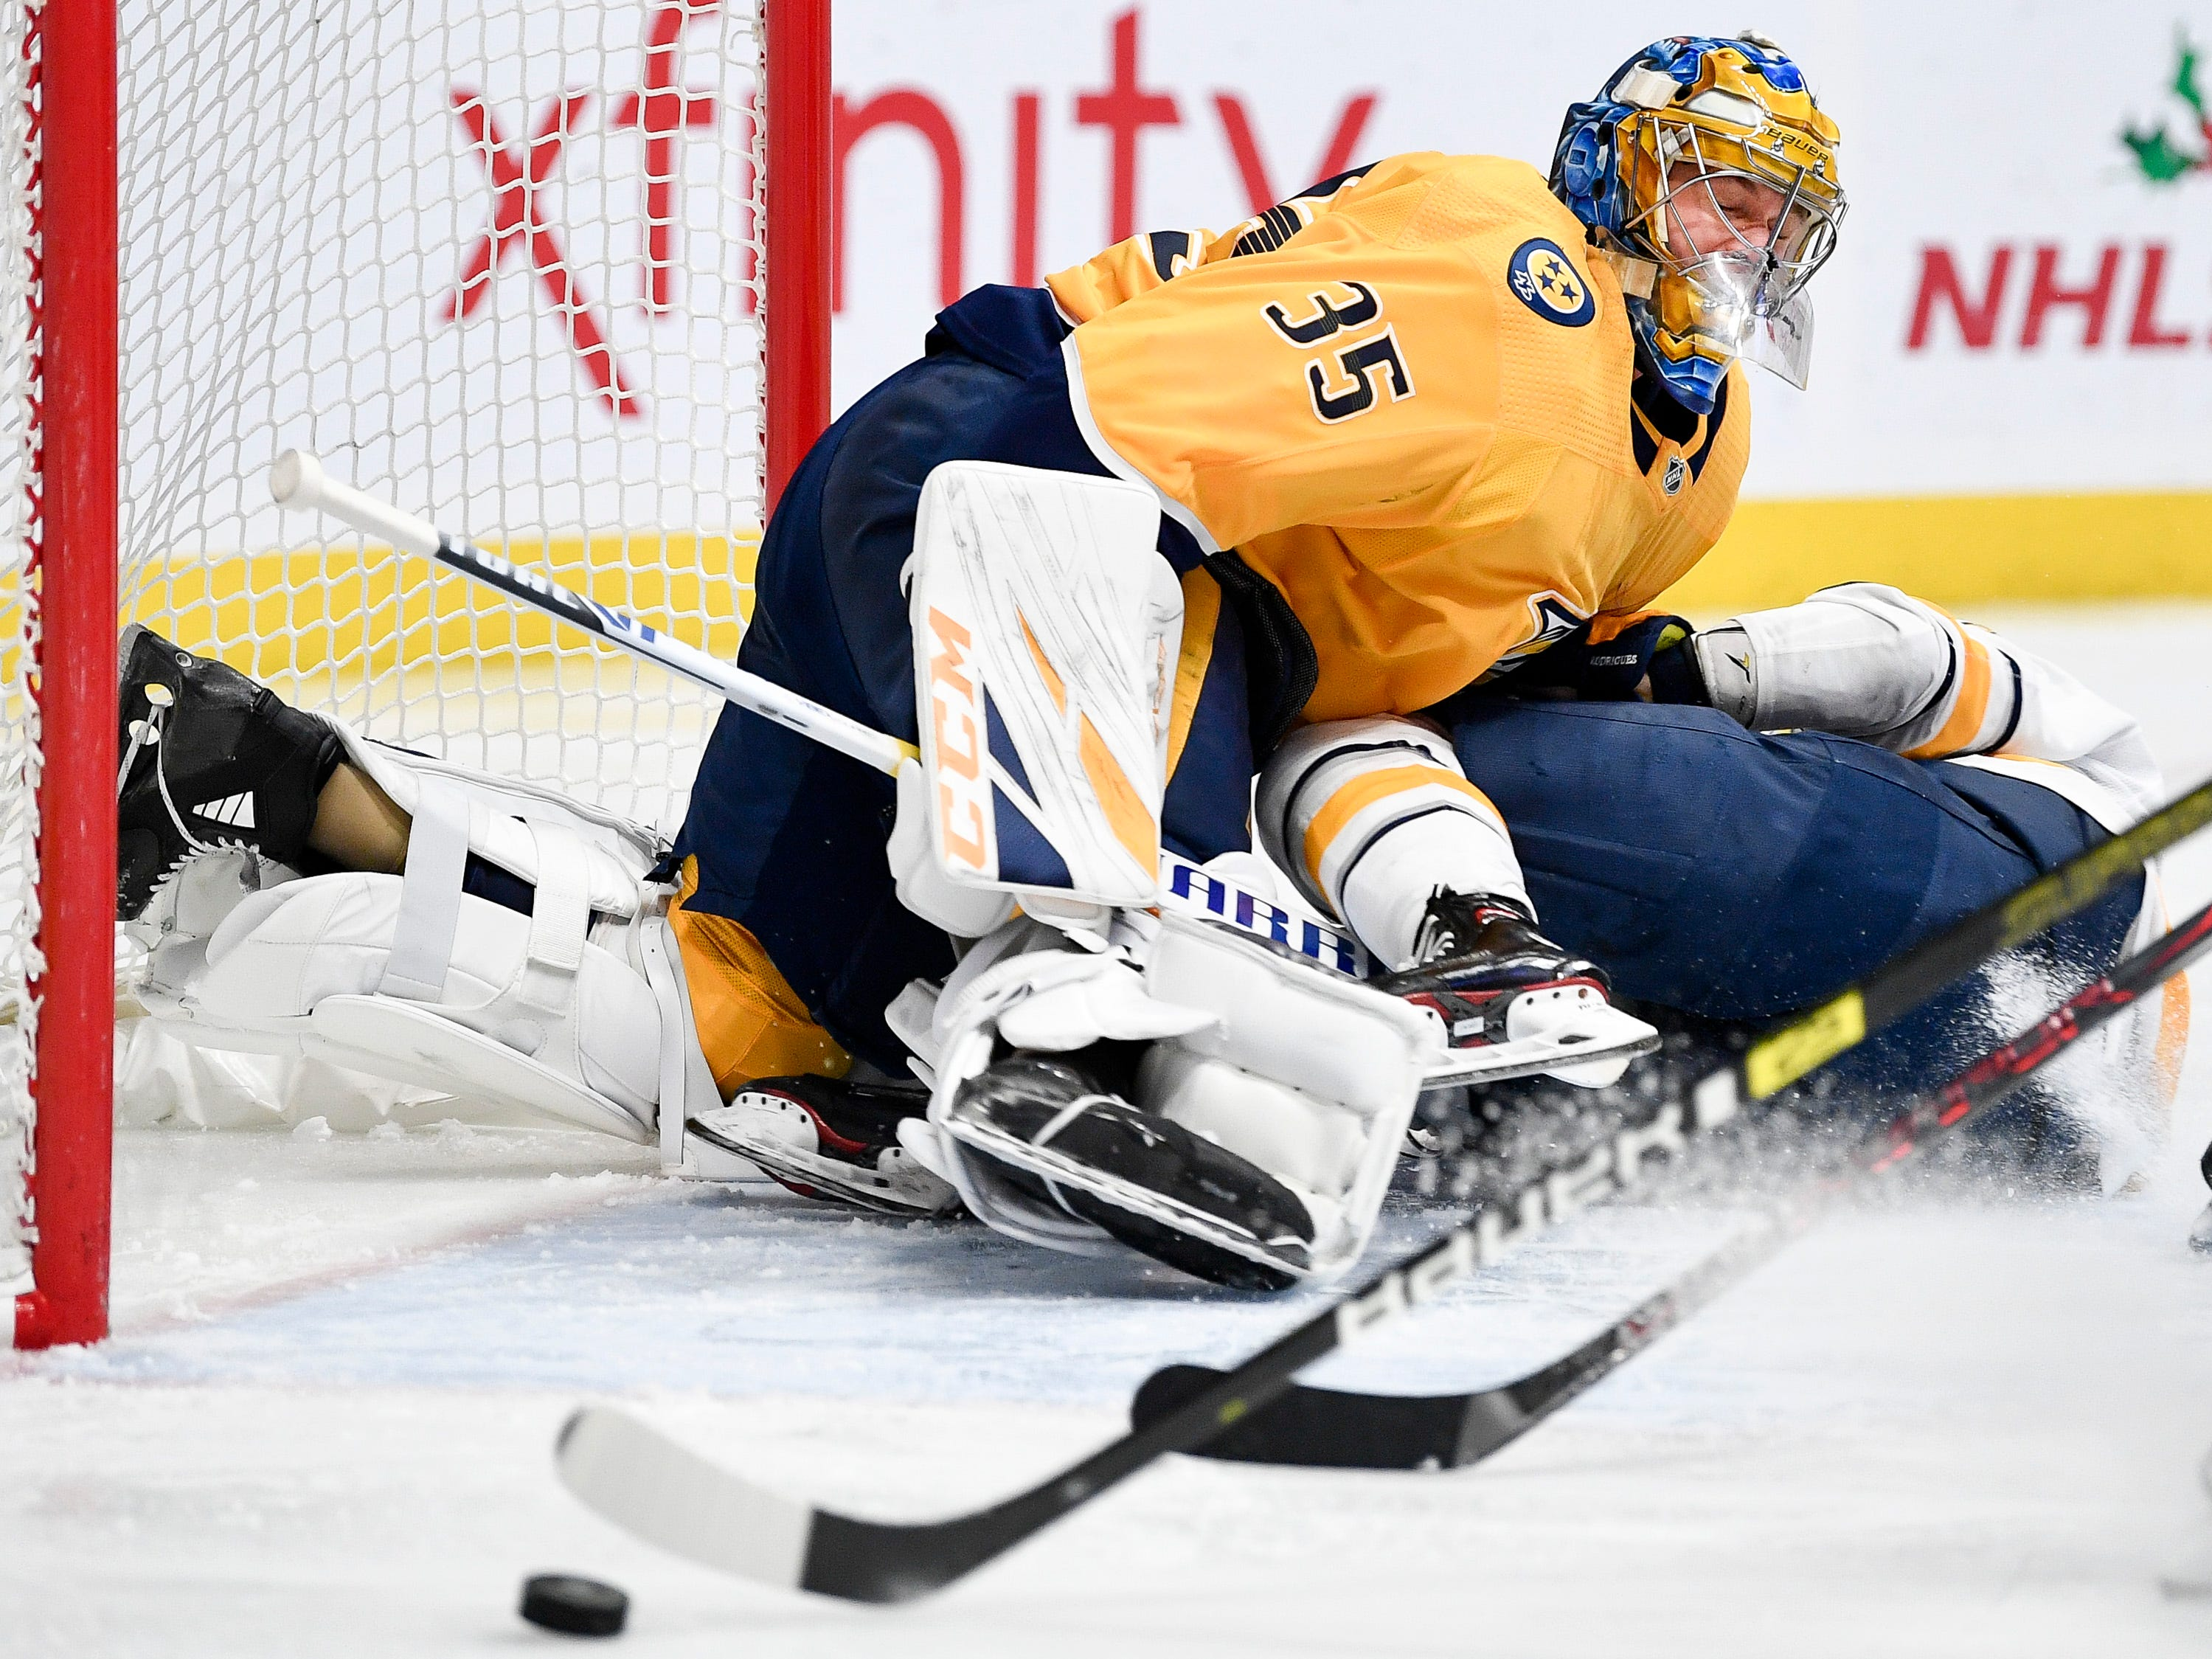 Nashville Predators goaltender Pekka Rinne (35) collides with Buffalo Sabres left wing Evan Rodrigues (71) during the second period at Bridgestone Arena in Nashville, Tenn., Monday, Dec. 3, 2018.